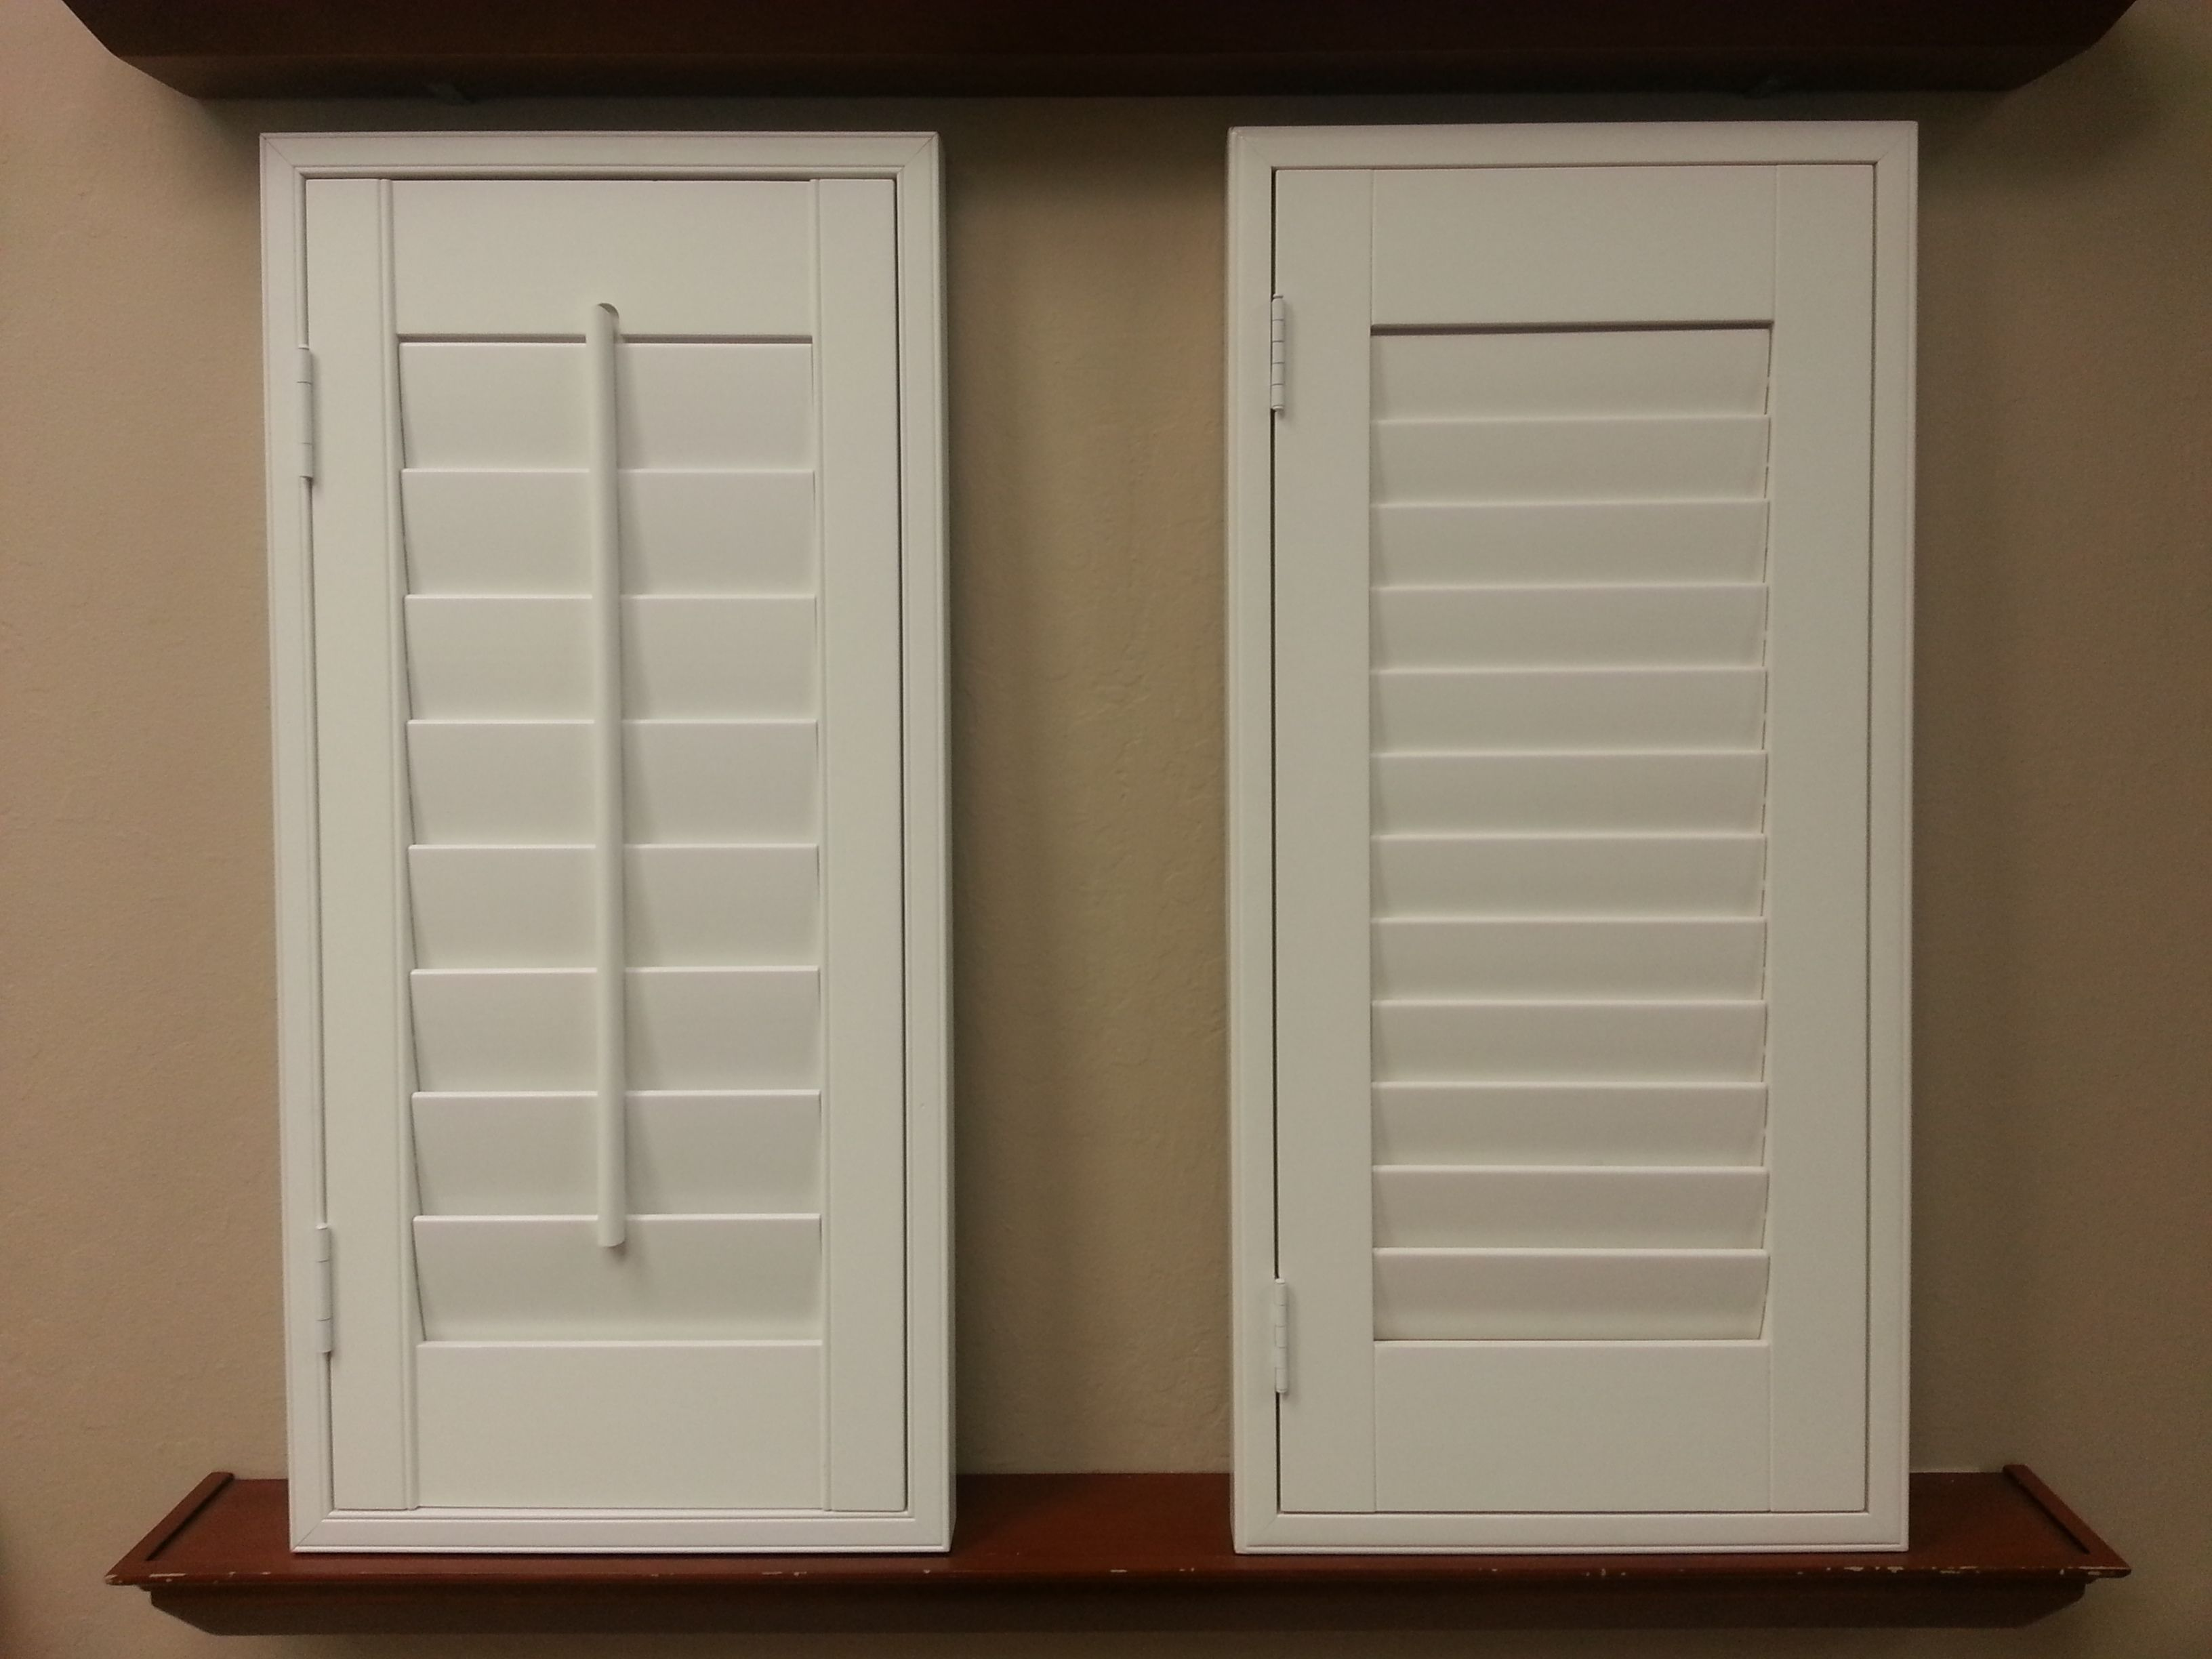 shutters blinds suppliers outdoor alibaba bi window california wooden fold and showroom interior com manufacturers components at